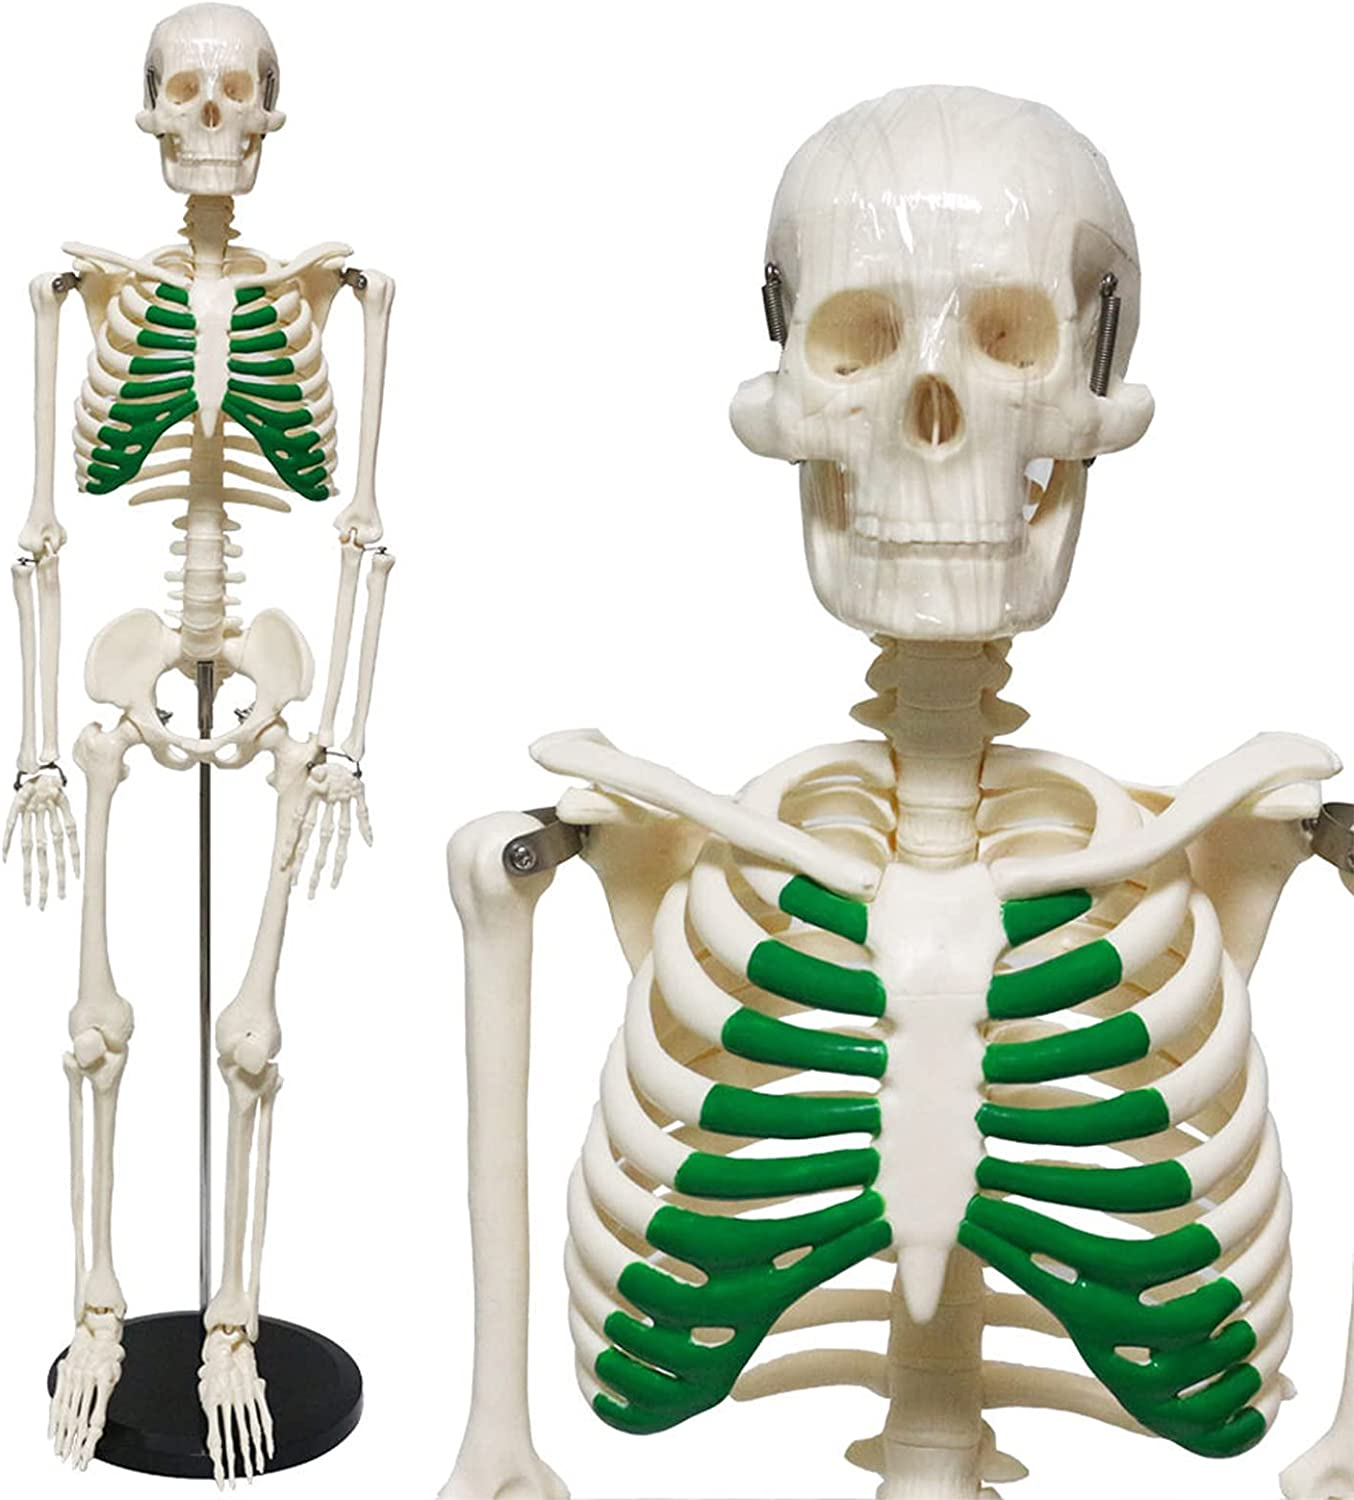 Louisville-Jefferson County Mall Human Skeleton New life Anatomy Model - Removable Tra Medical Educational